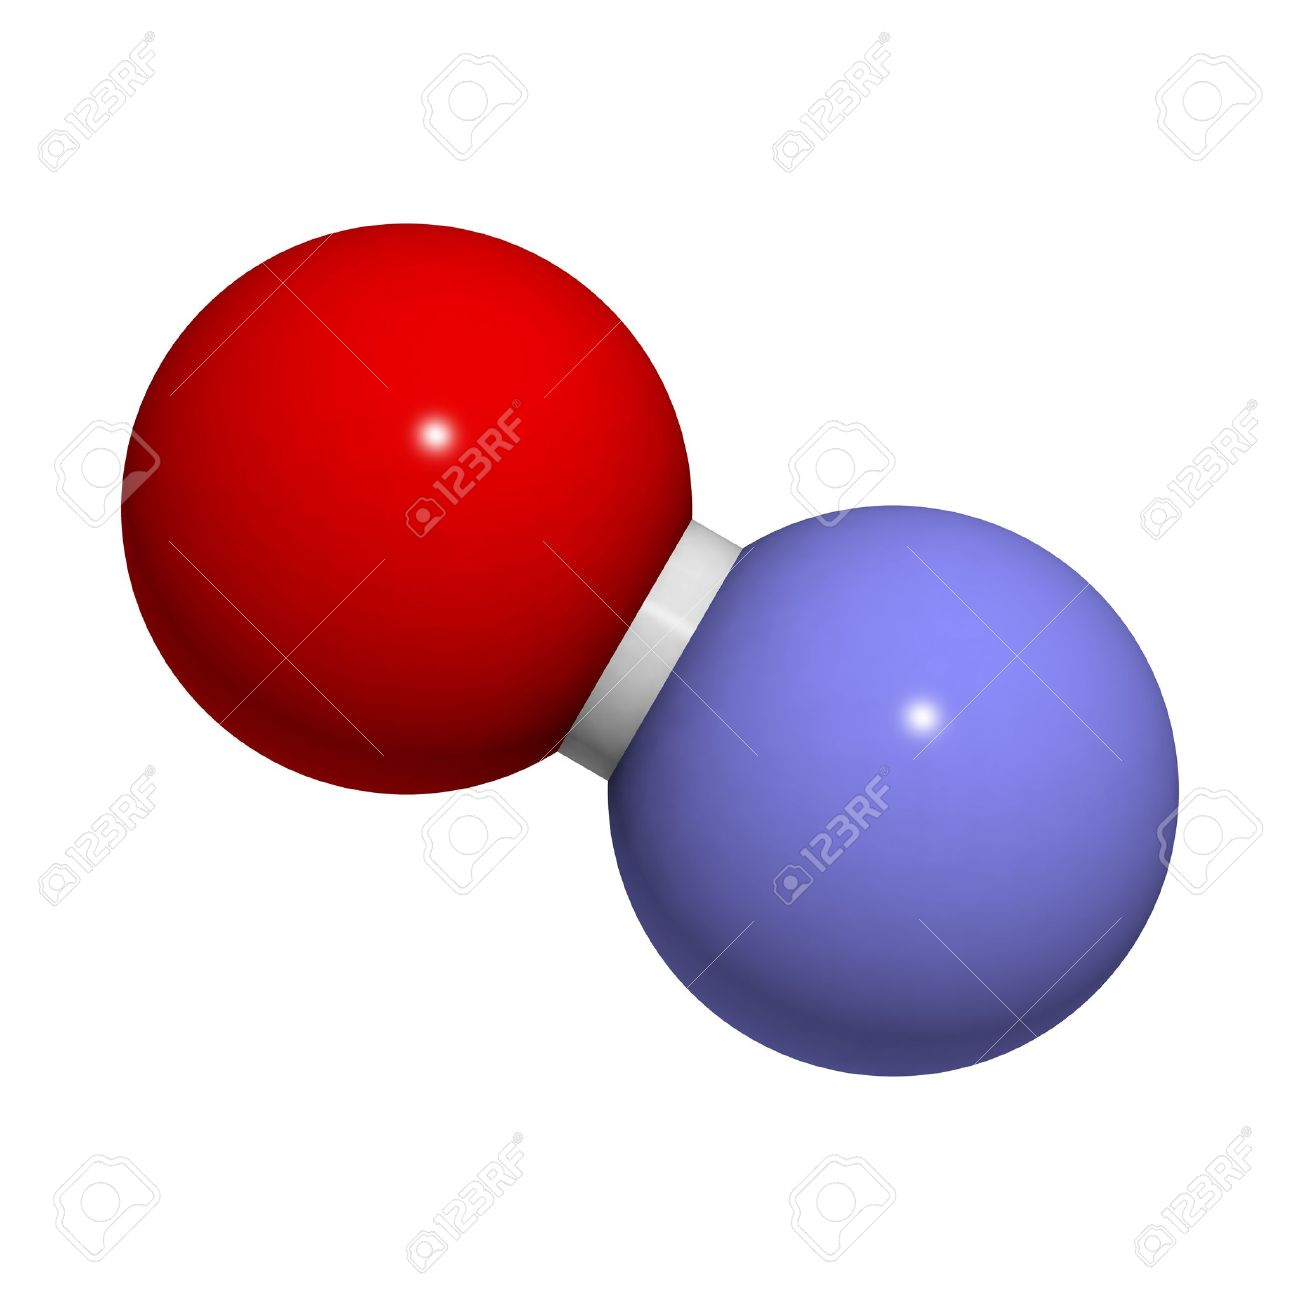 Nitric oxide (NO) free radical and signaling molecule, molecular model. It is also known as the endothelium-derived relaxing factor (EDRF). Atoms are represented as spheres with conventional color coding: oxygen (red), nitrogen (blue) Stock Photo - 18947382